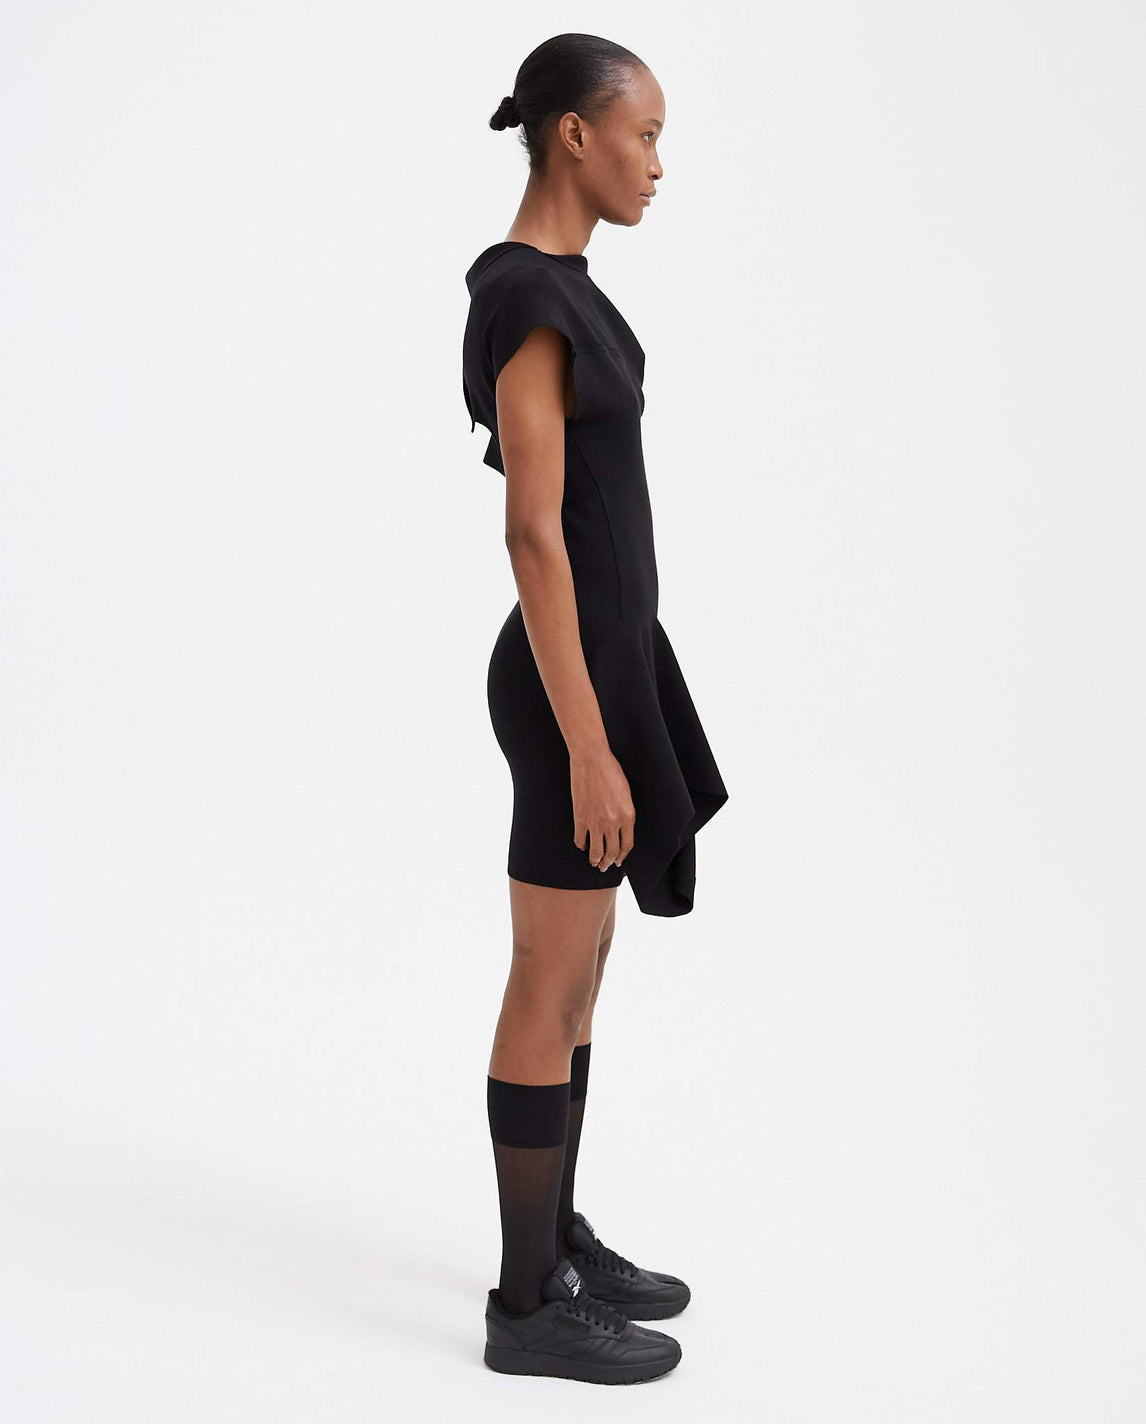 Sandra Minidress - Black WOMENS RICK OWENS